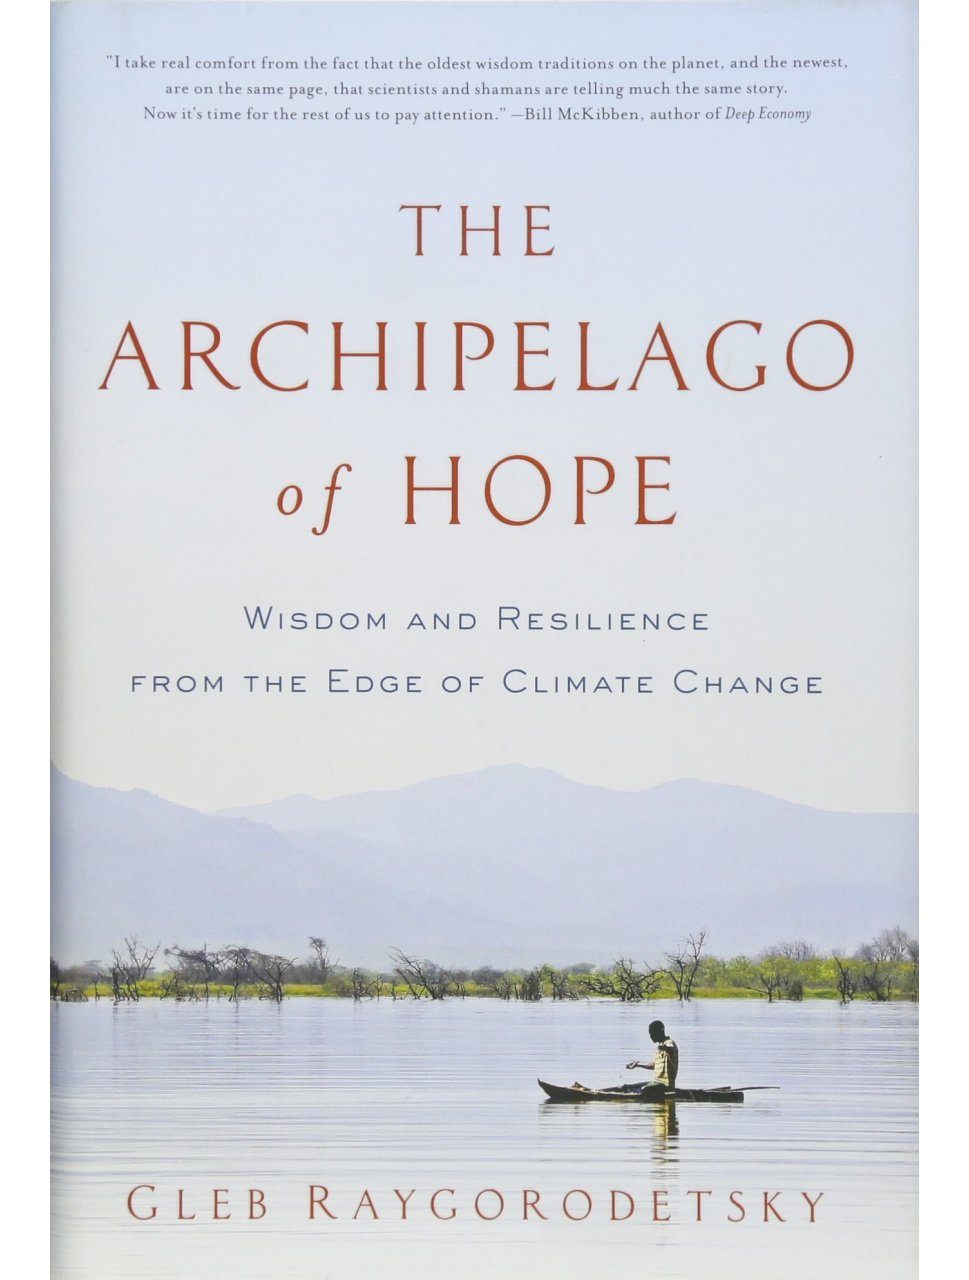 The Archipelago of Hope